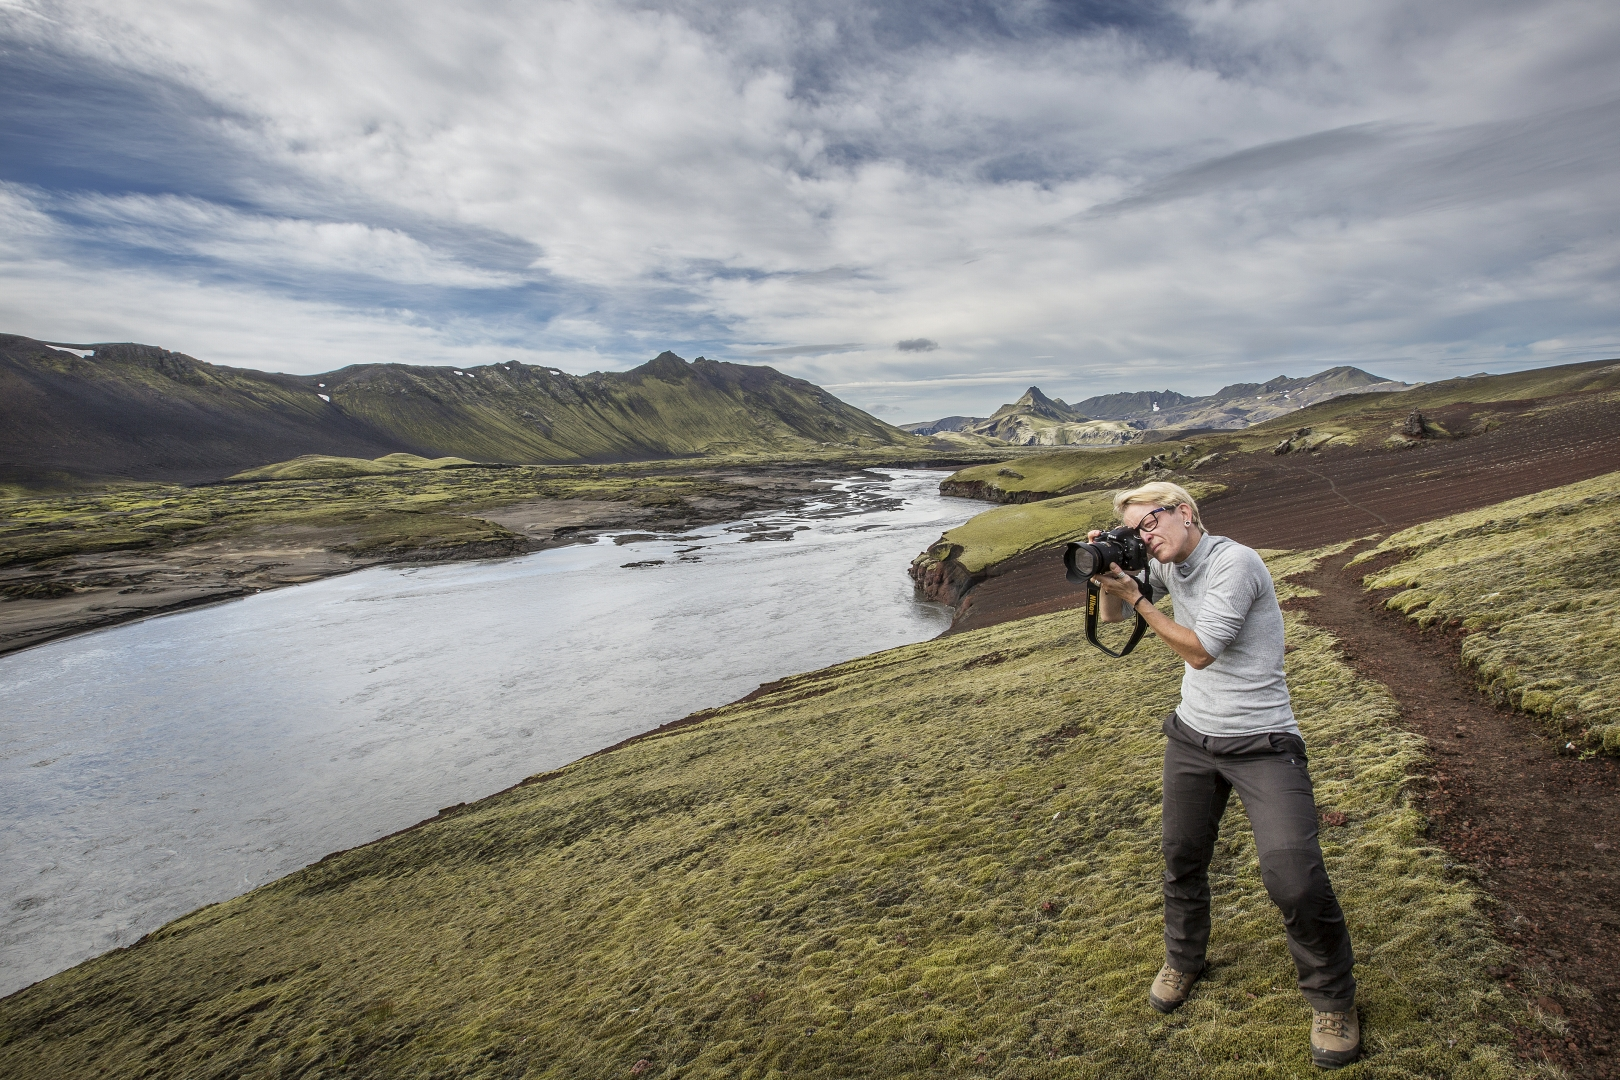 The highlands of Iceland are veined with river systems and dotted with lakes.